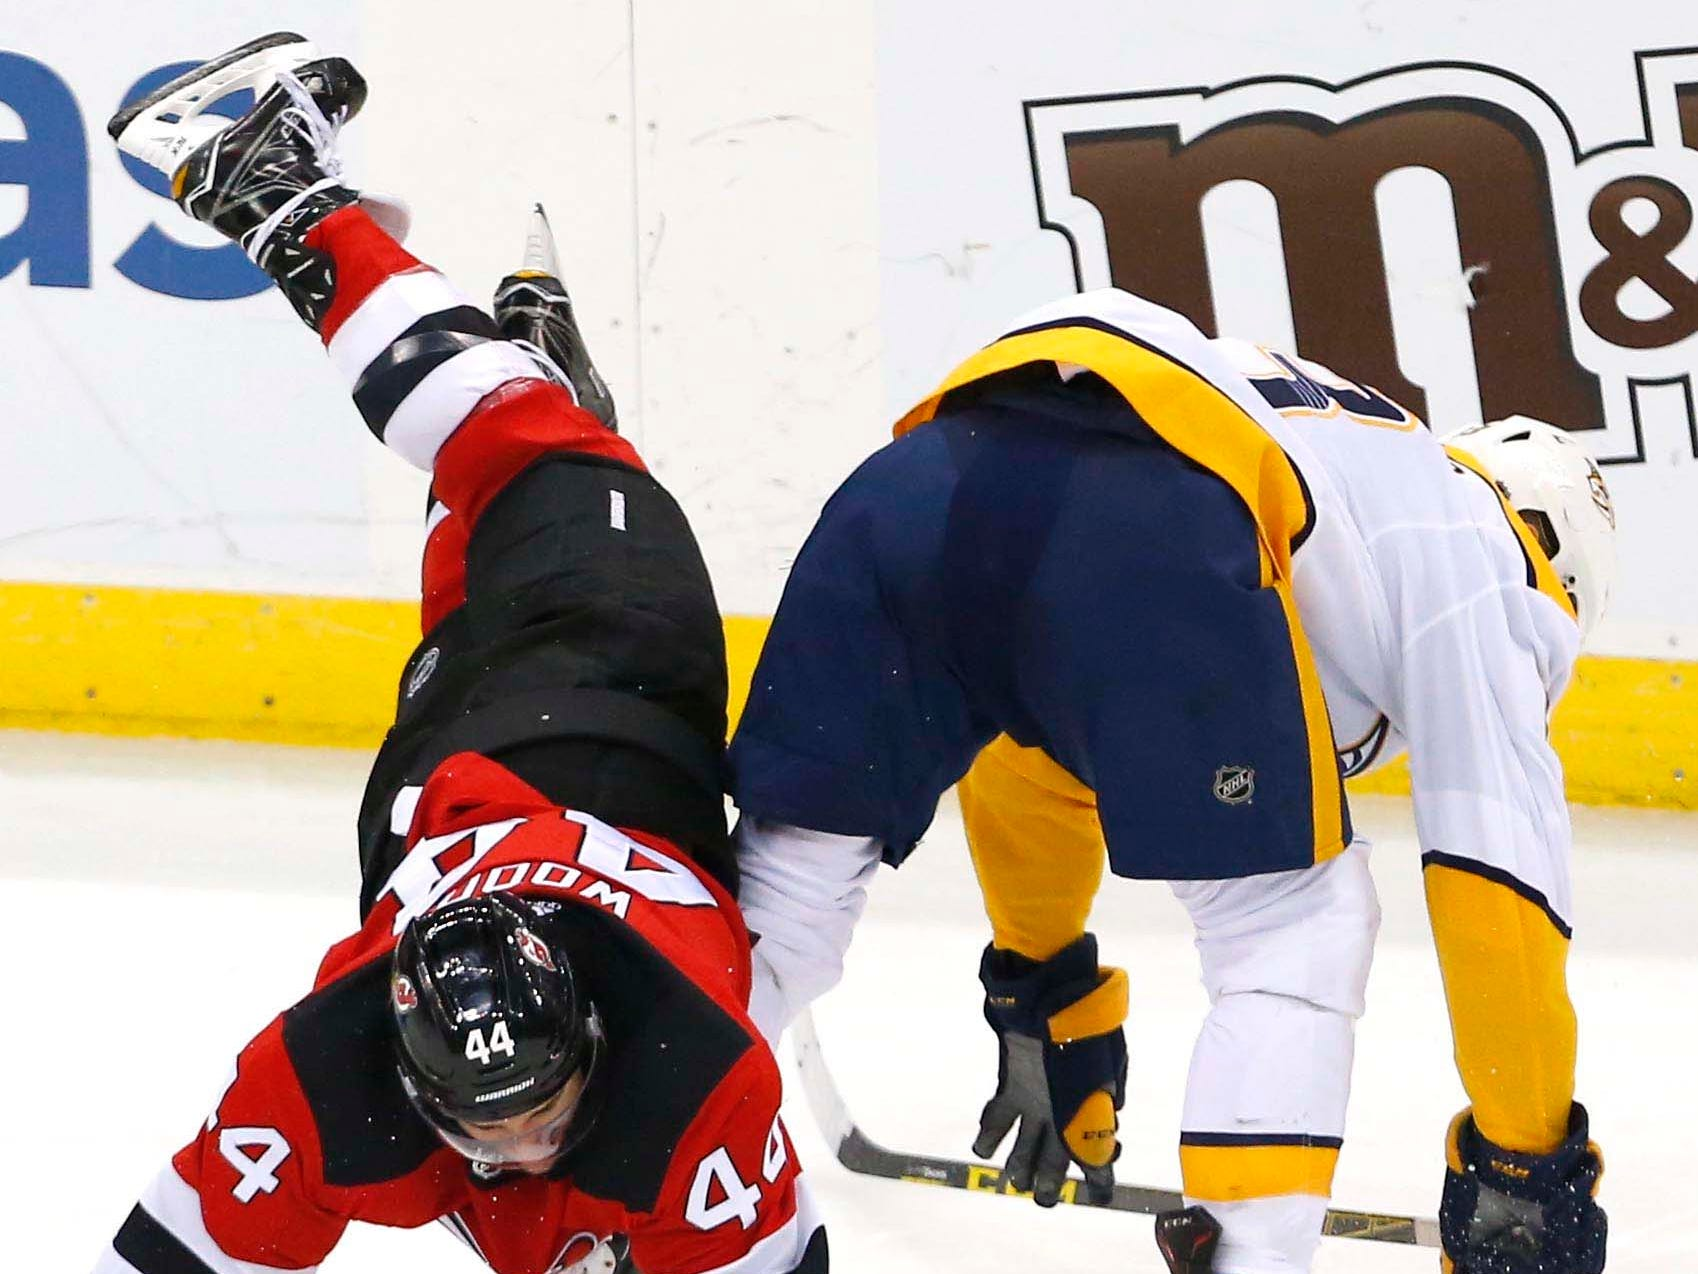 New Jersey Devils left wing Miles Wood (44) goes down after a collision with Nashville Predators center Nick Bonino (13) during the third  period at Prudential Center.